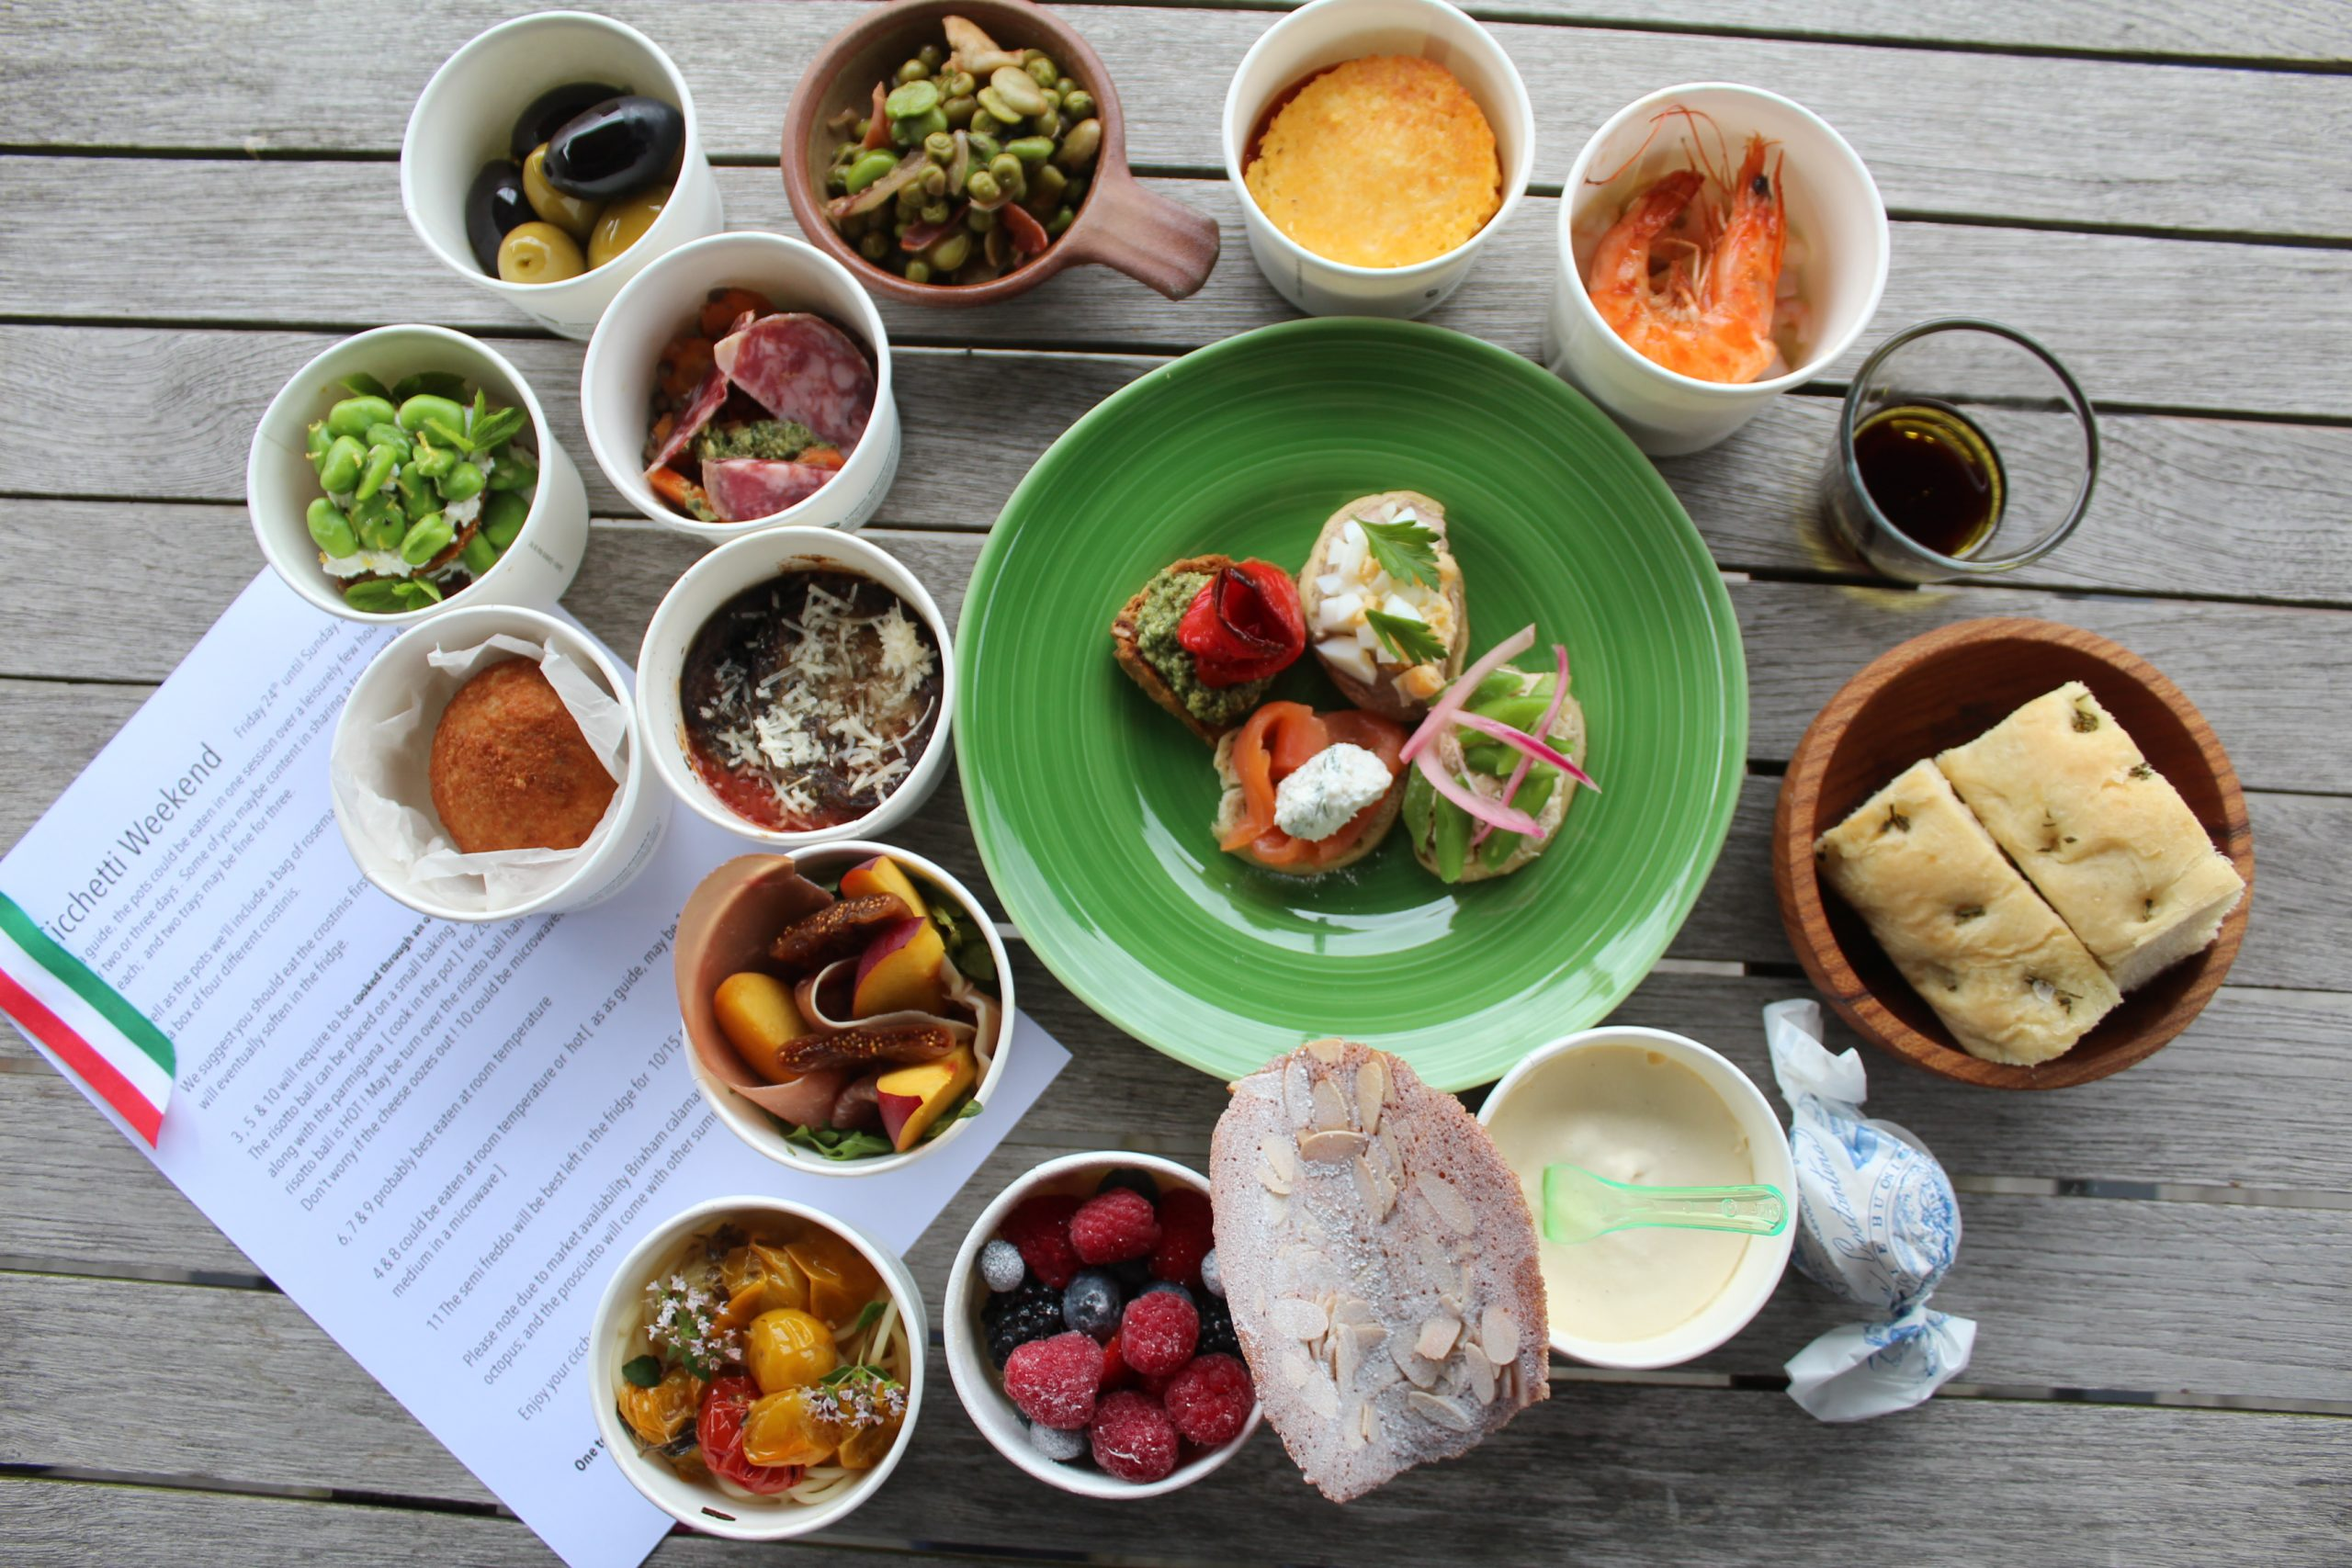 Amended opening hours and new supper menu from second week of August